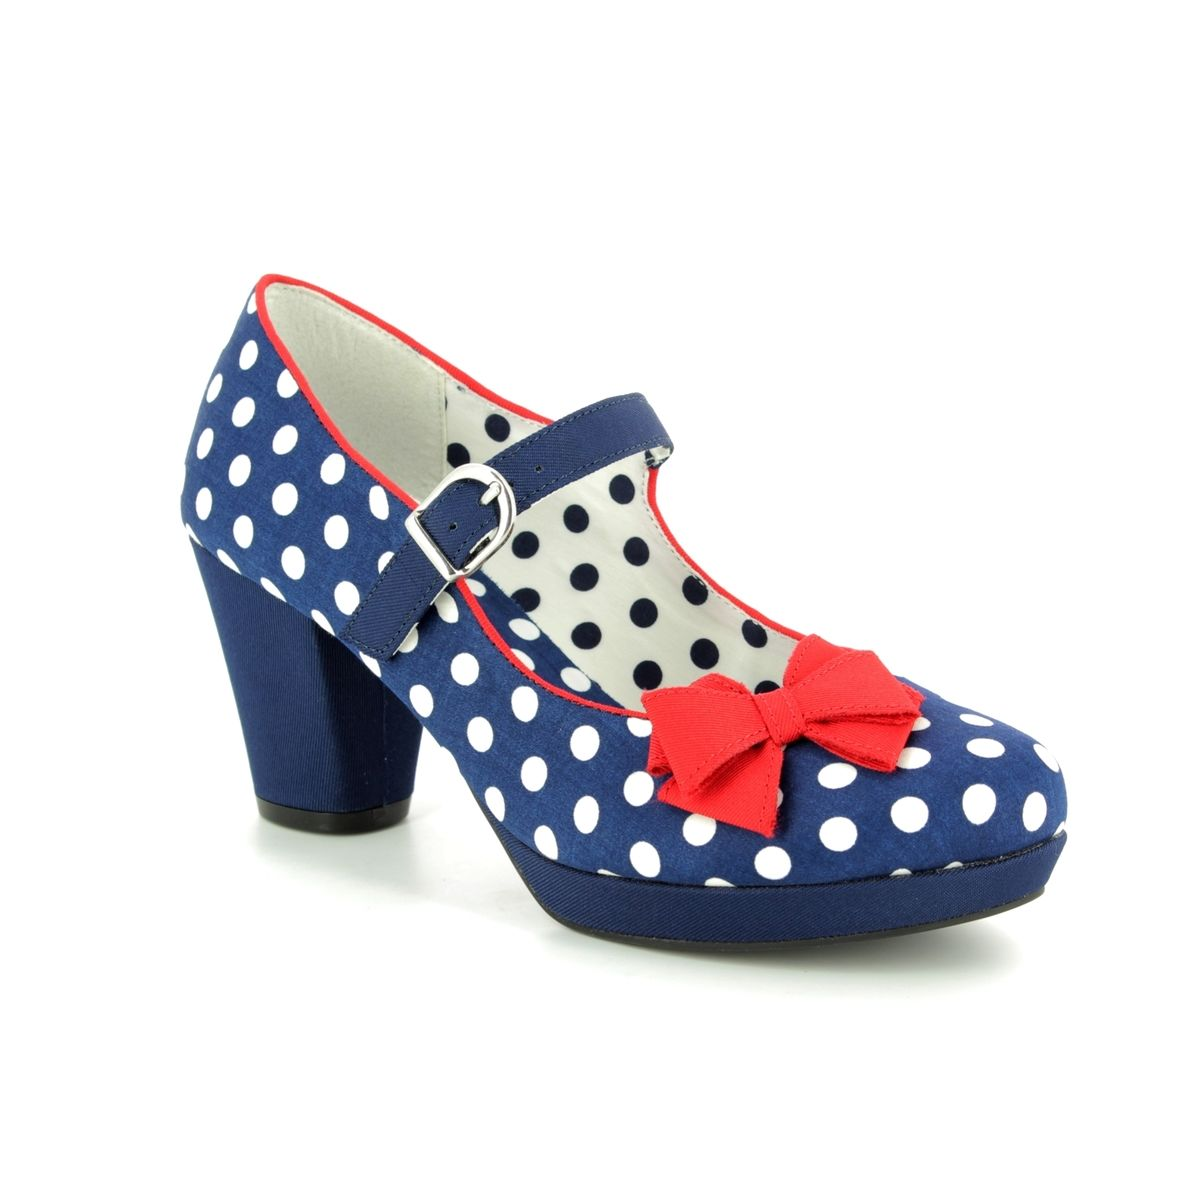 d5283a7ff2a931 Ruby Shoo High-heeled Shoes - Navy Spot - 09224/70 CRYSTAL